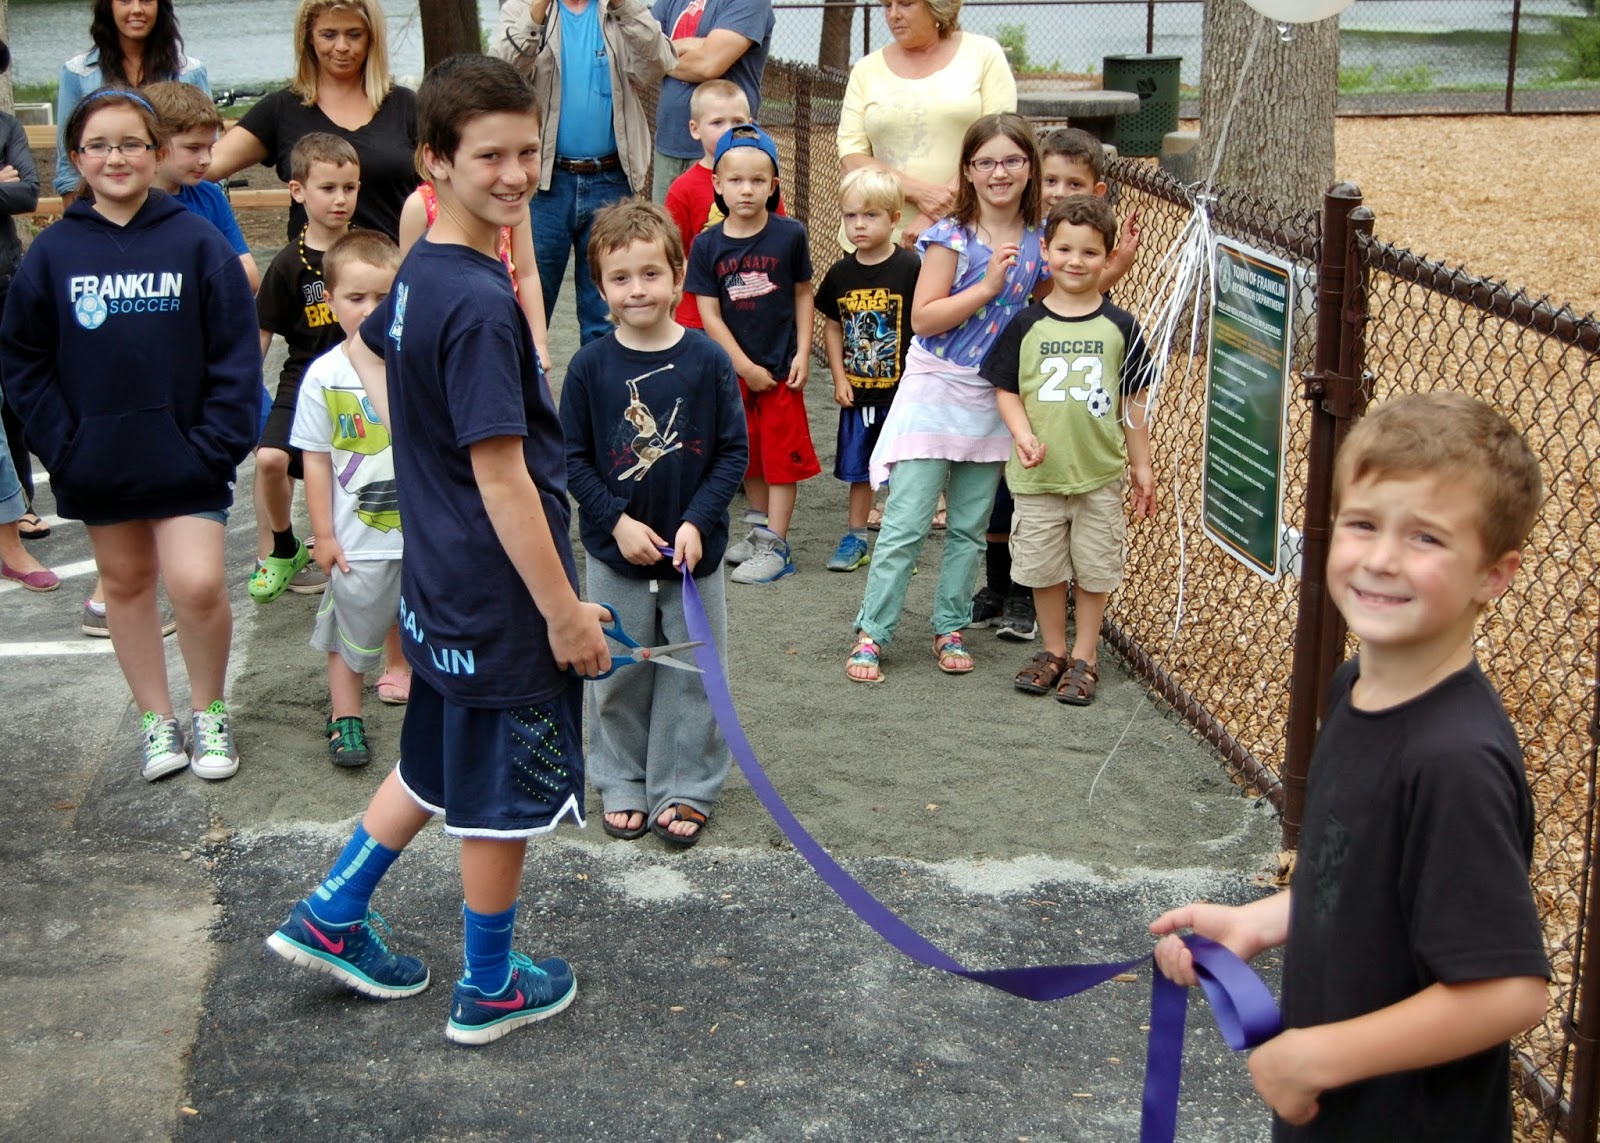 then it was time for some eager youths to cut the ribbon to the playground